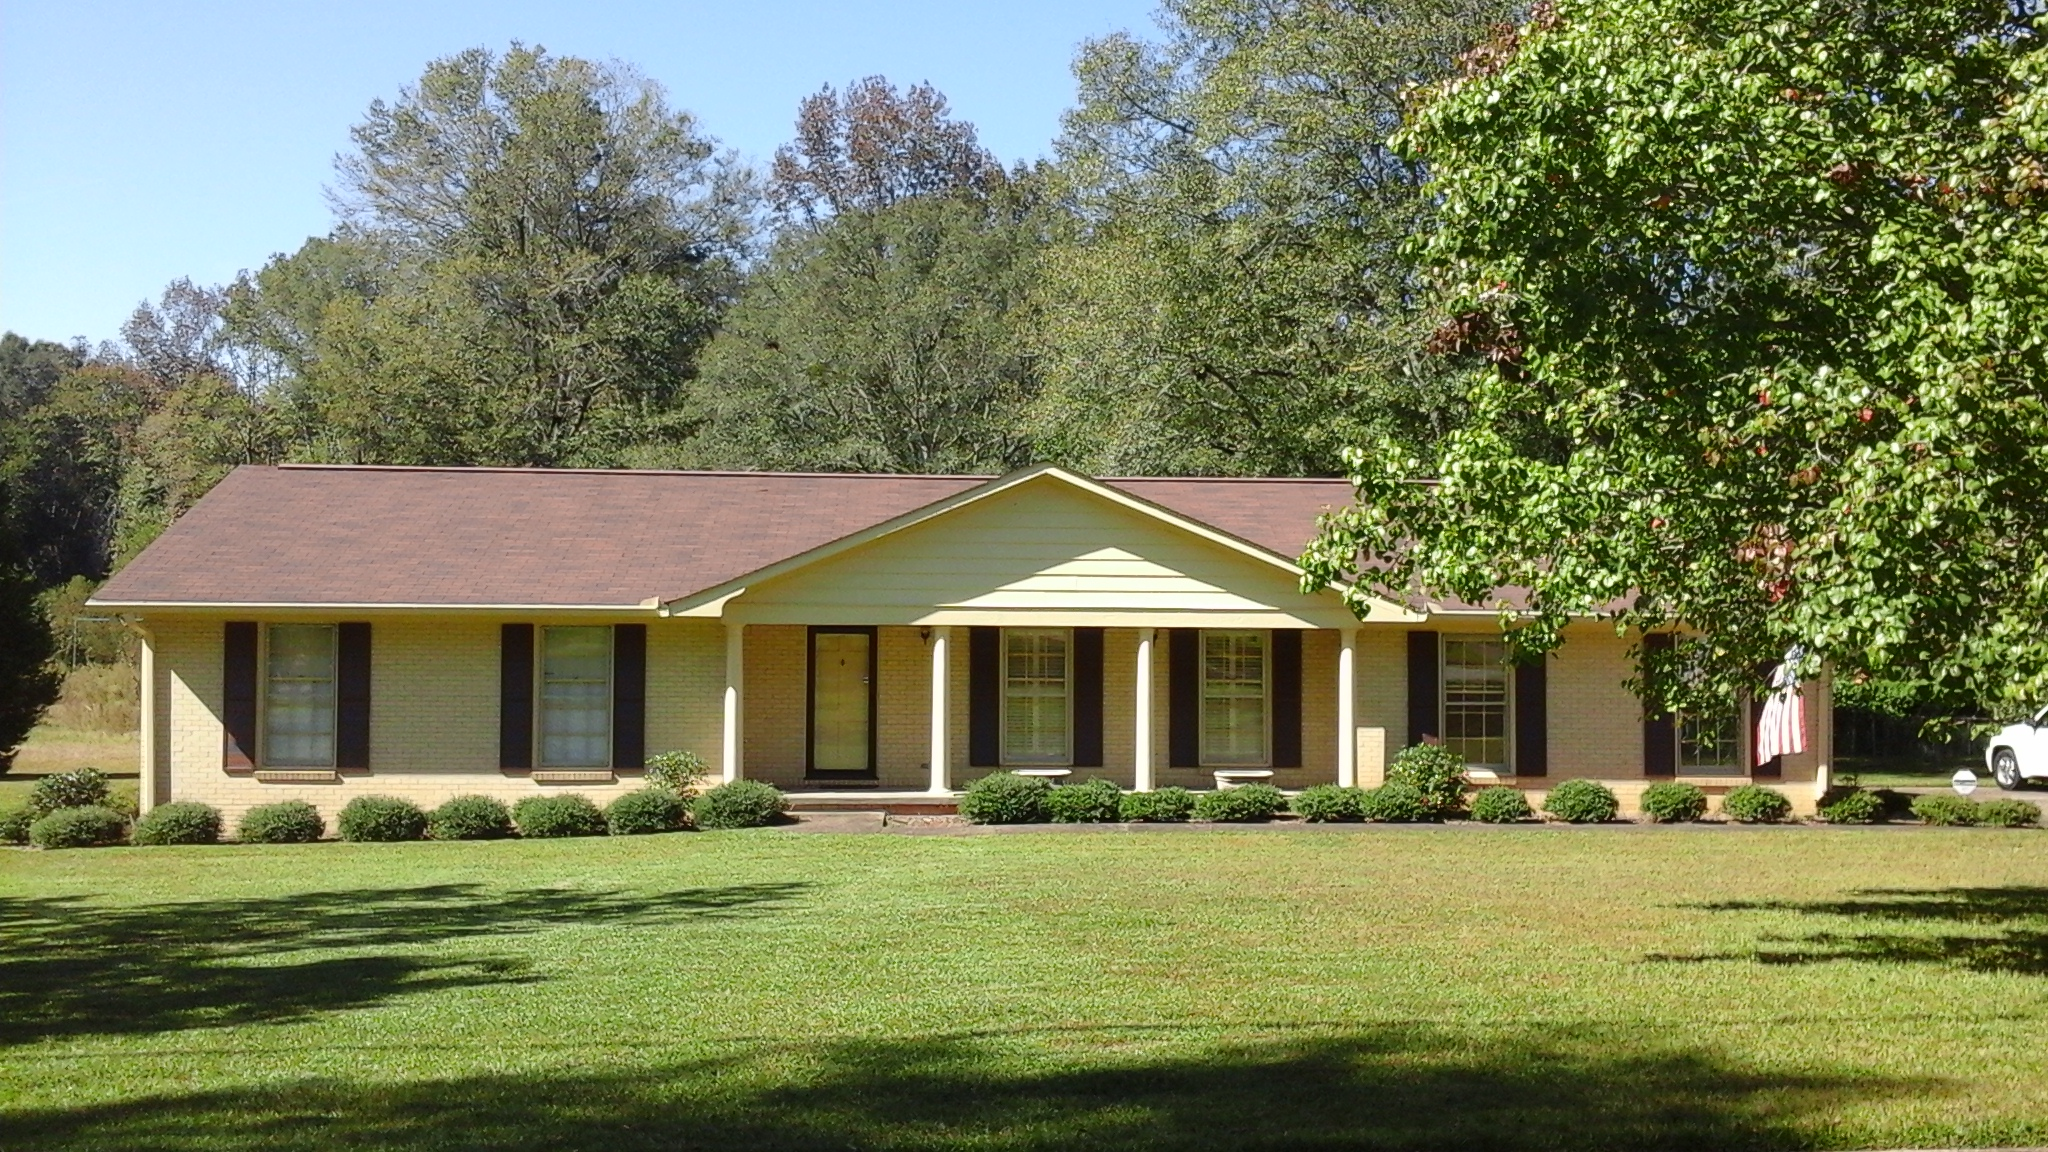 1006 South 13th Ave, Lanett, AL 36863